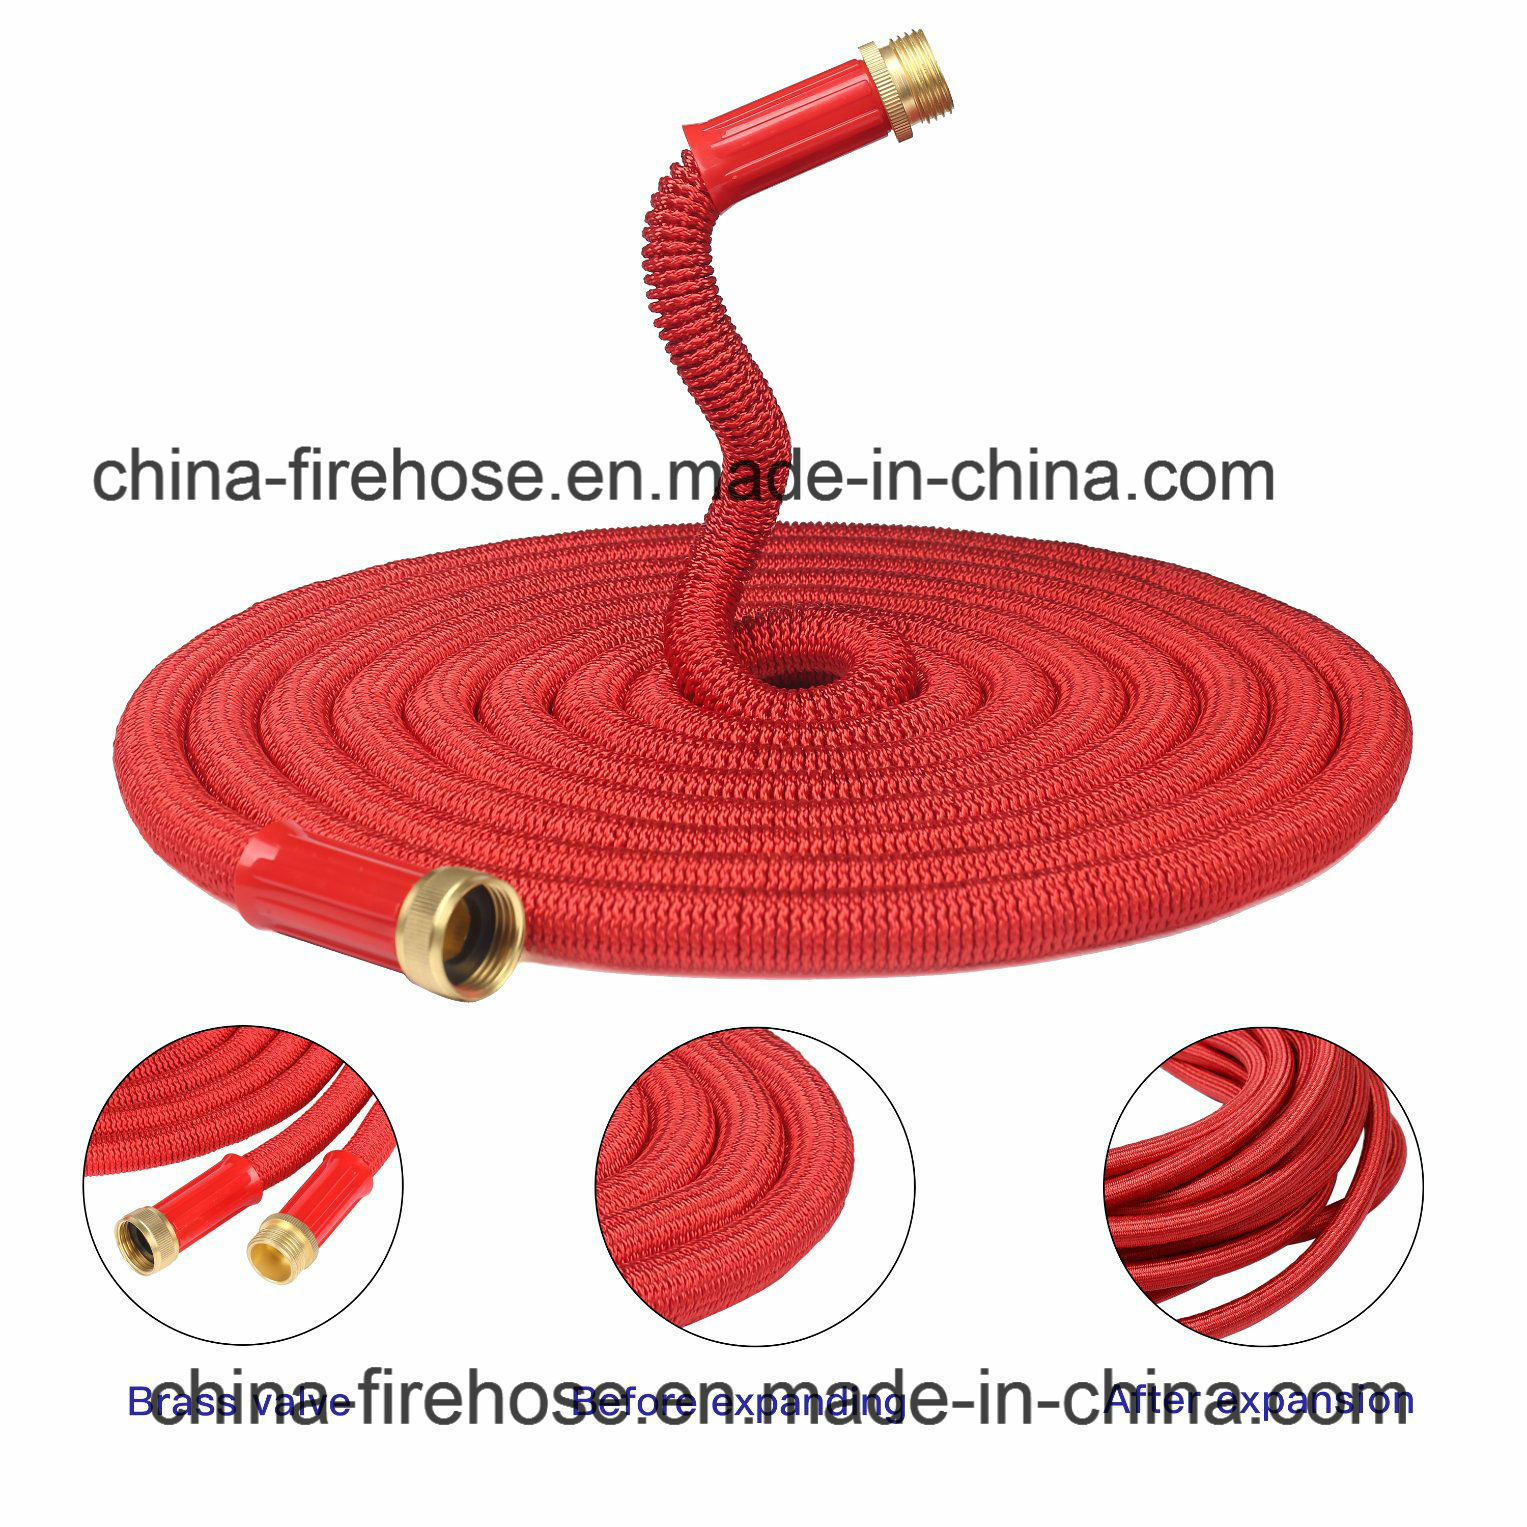 Zhijing Garden Water Retractable Shower Magic Quick Coupling Flexible Water Expandable Garden Hose